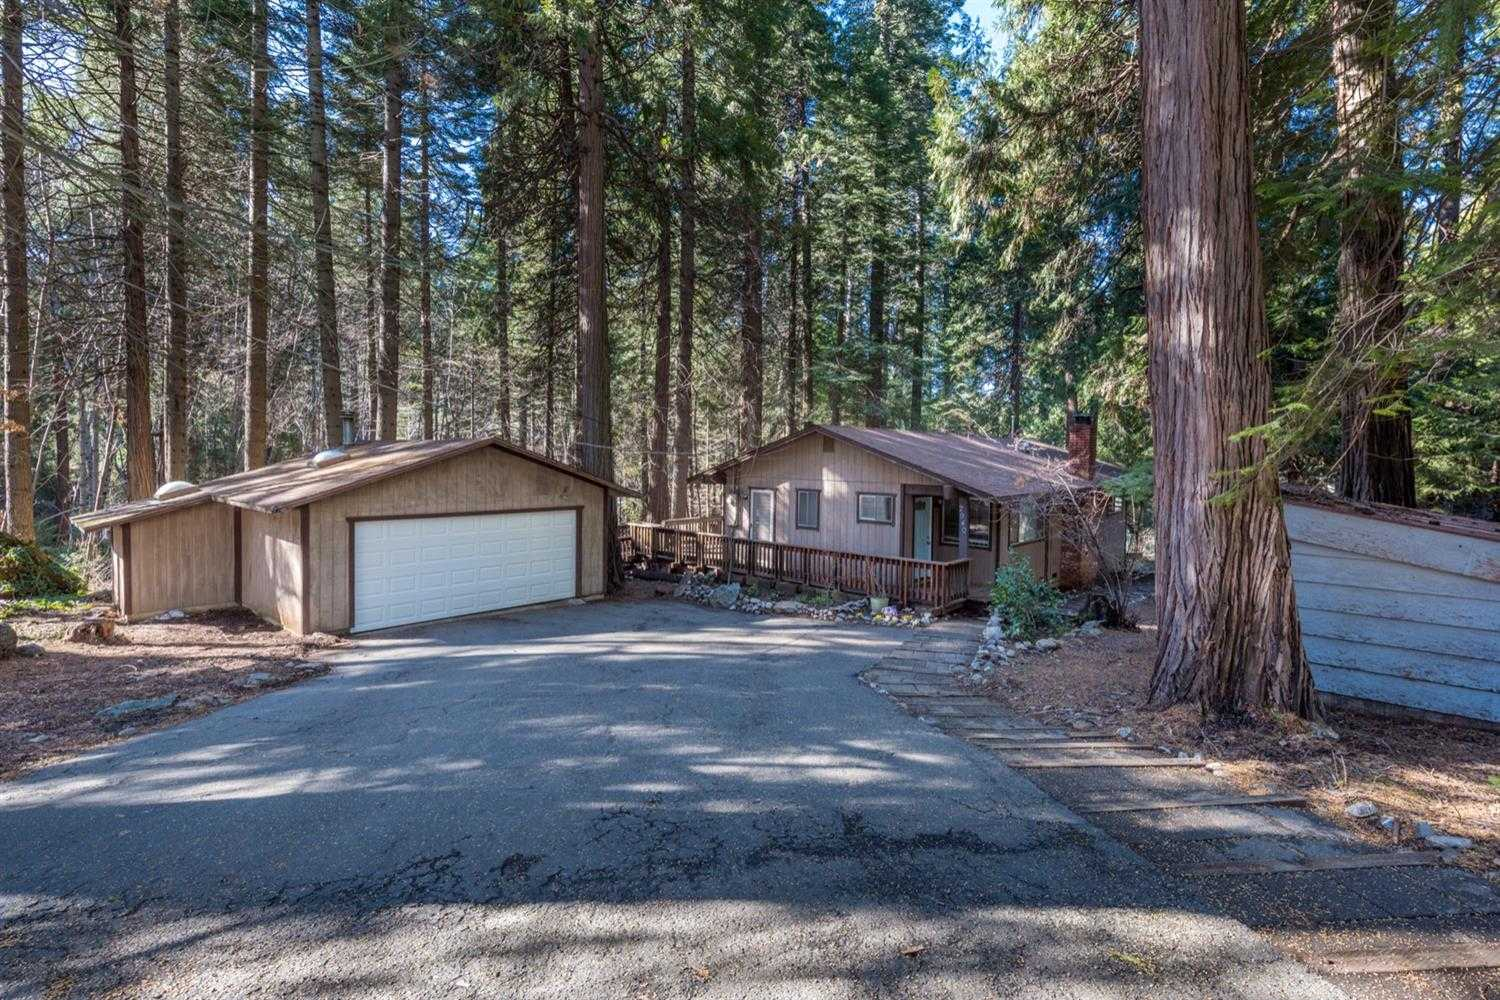 $309,900 - 2Br/2Ba -  for Sale in Pollock Pines